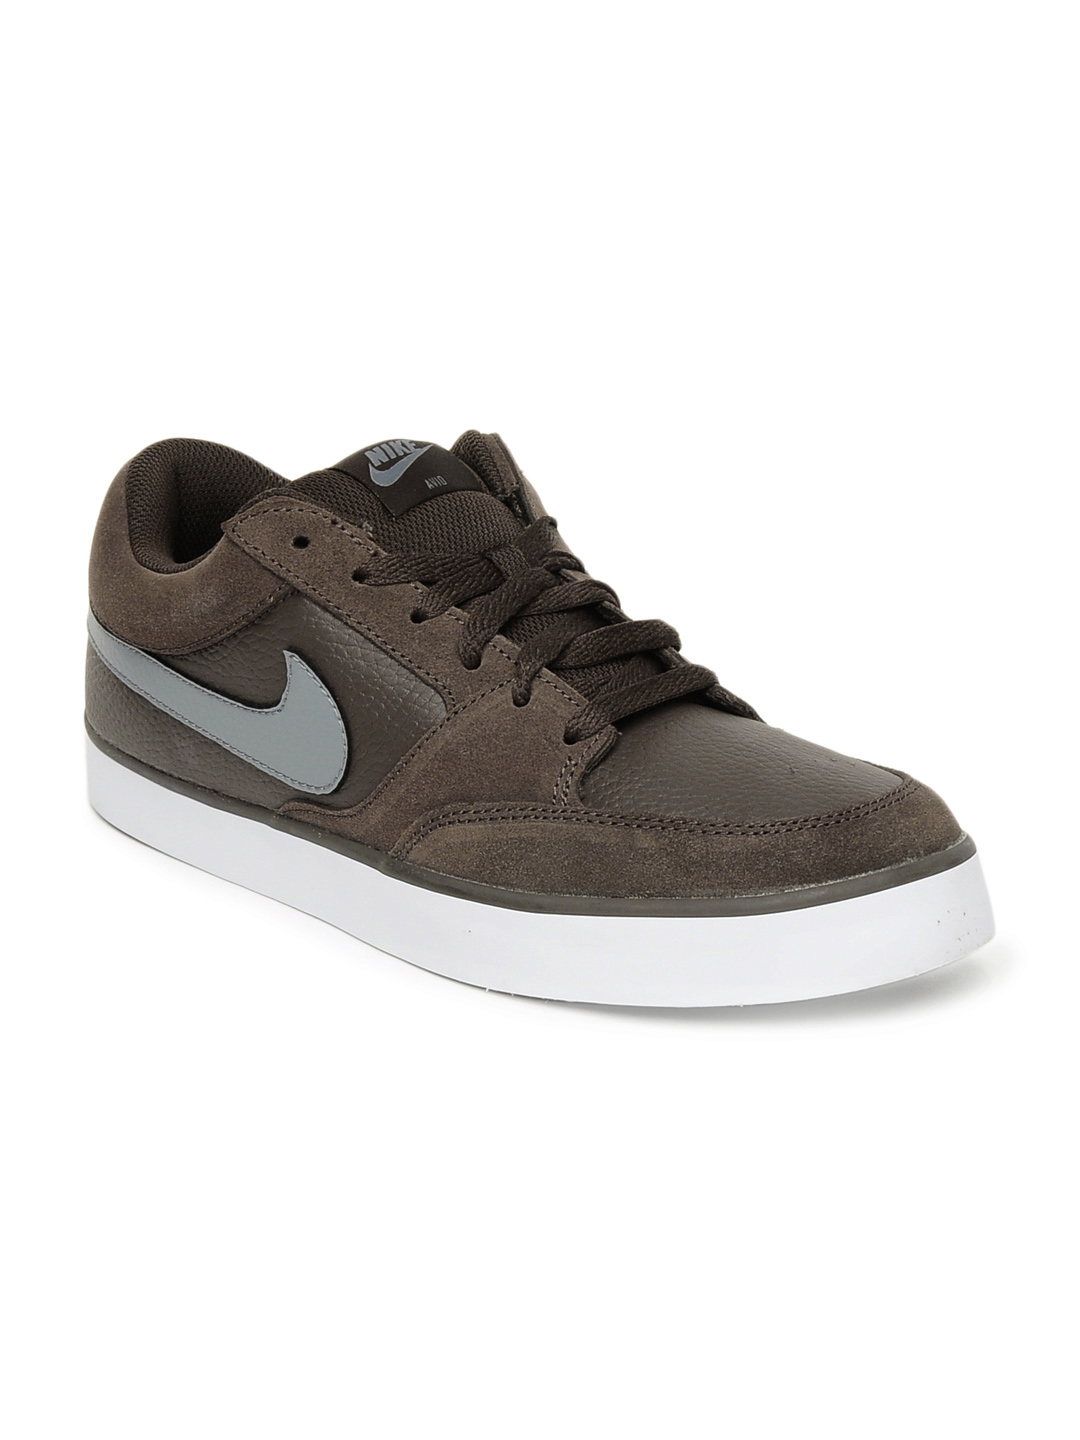 Nike Men Brown Avid Shoes